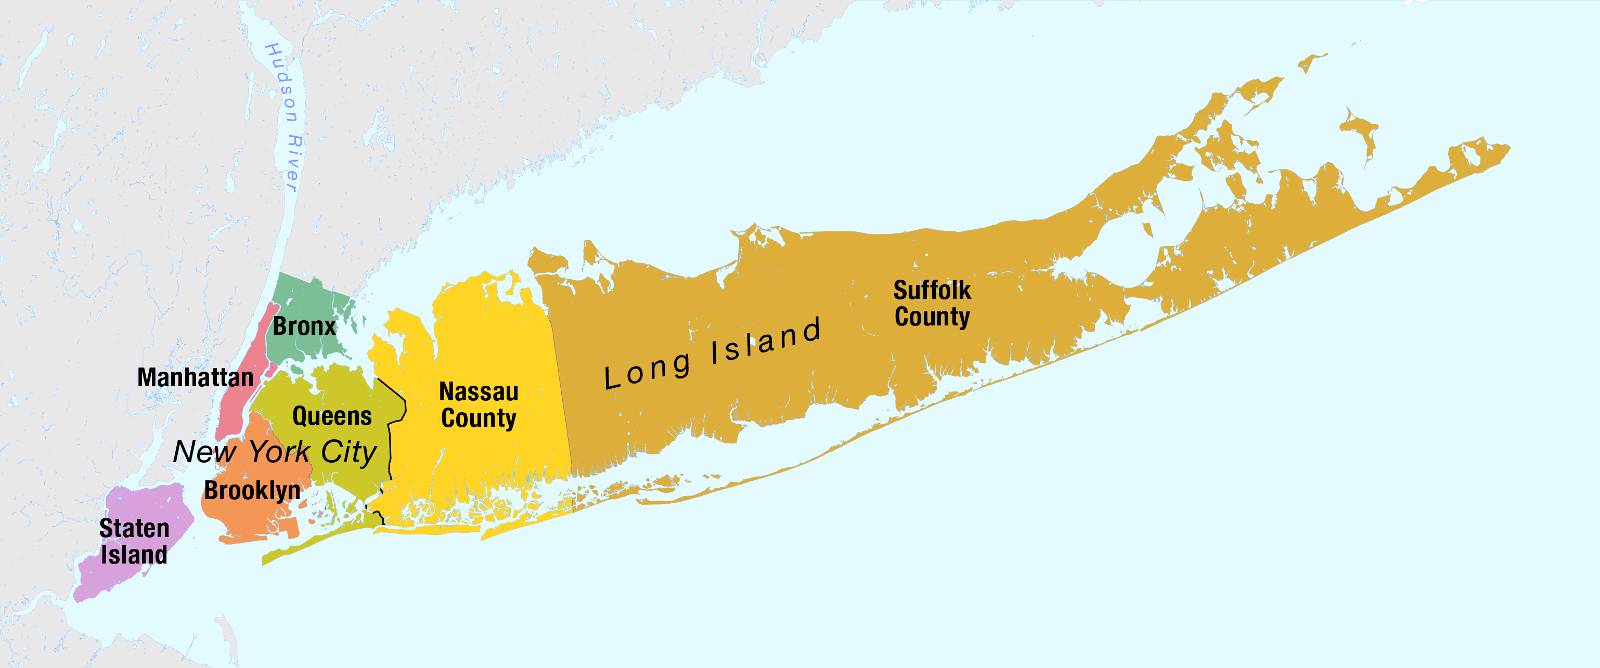 Long Island economy uncertainty in 2019. #fakenews?